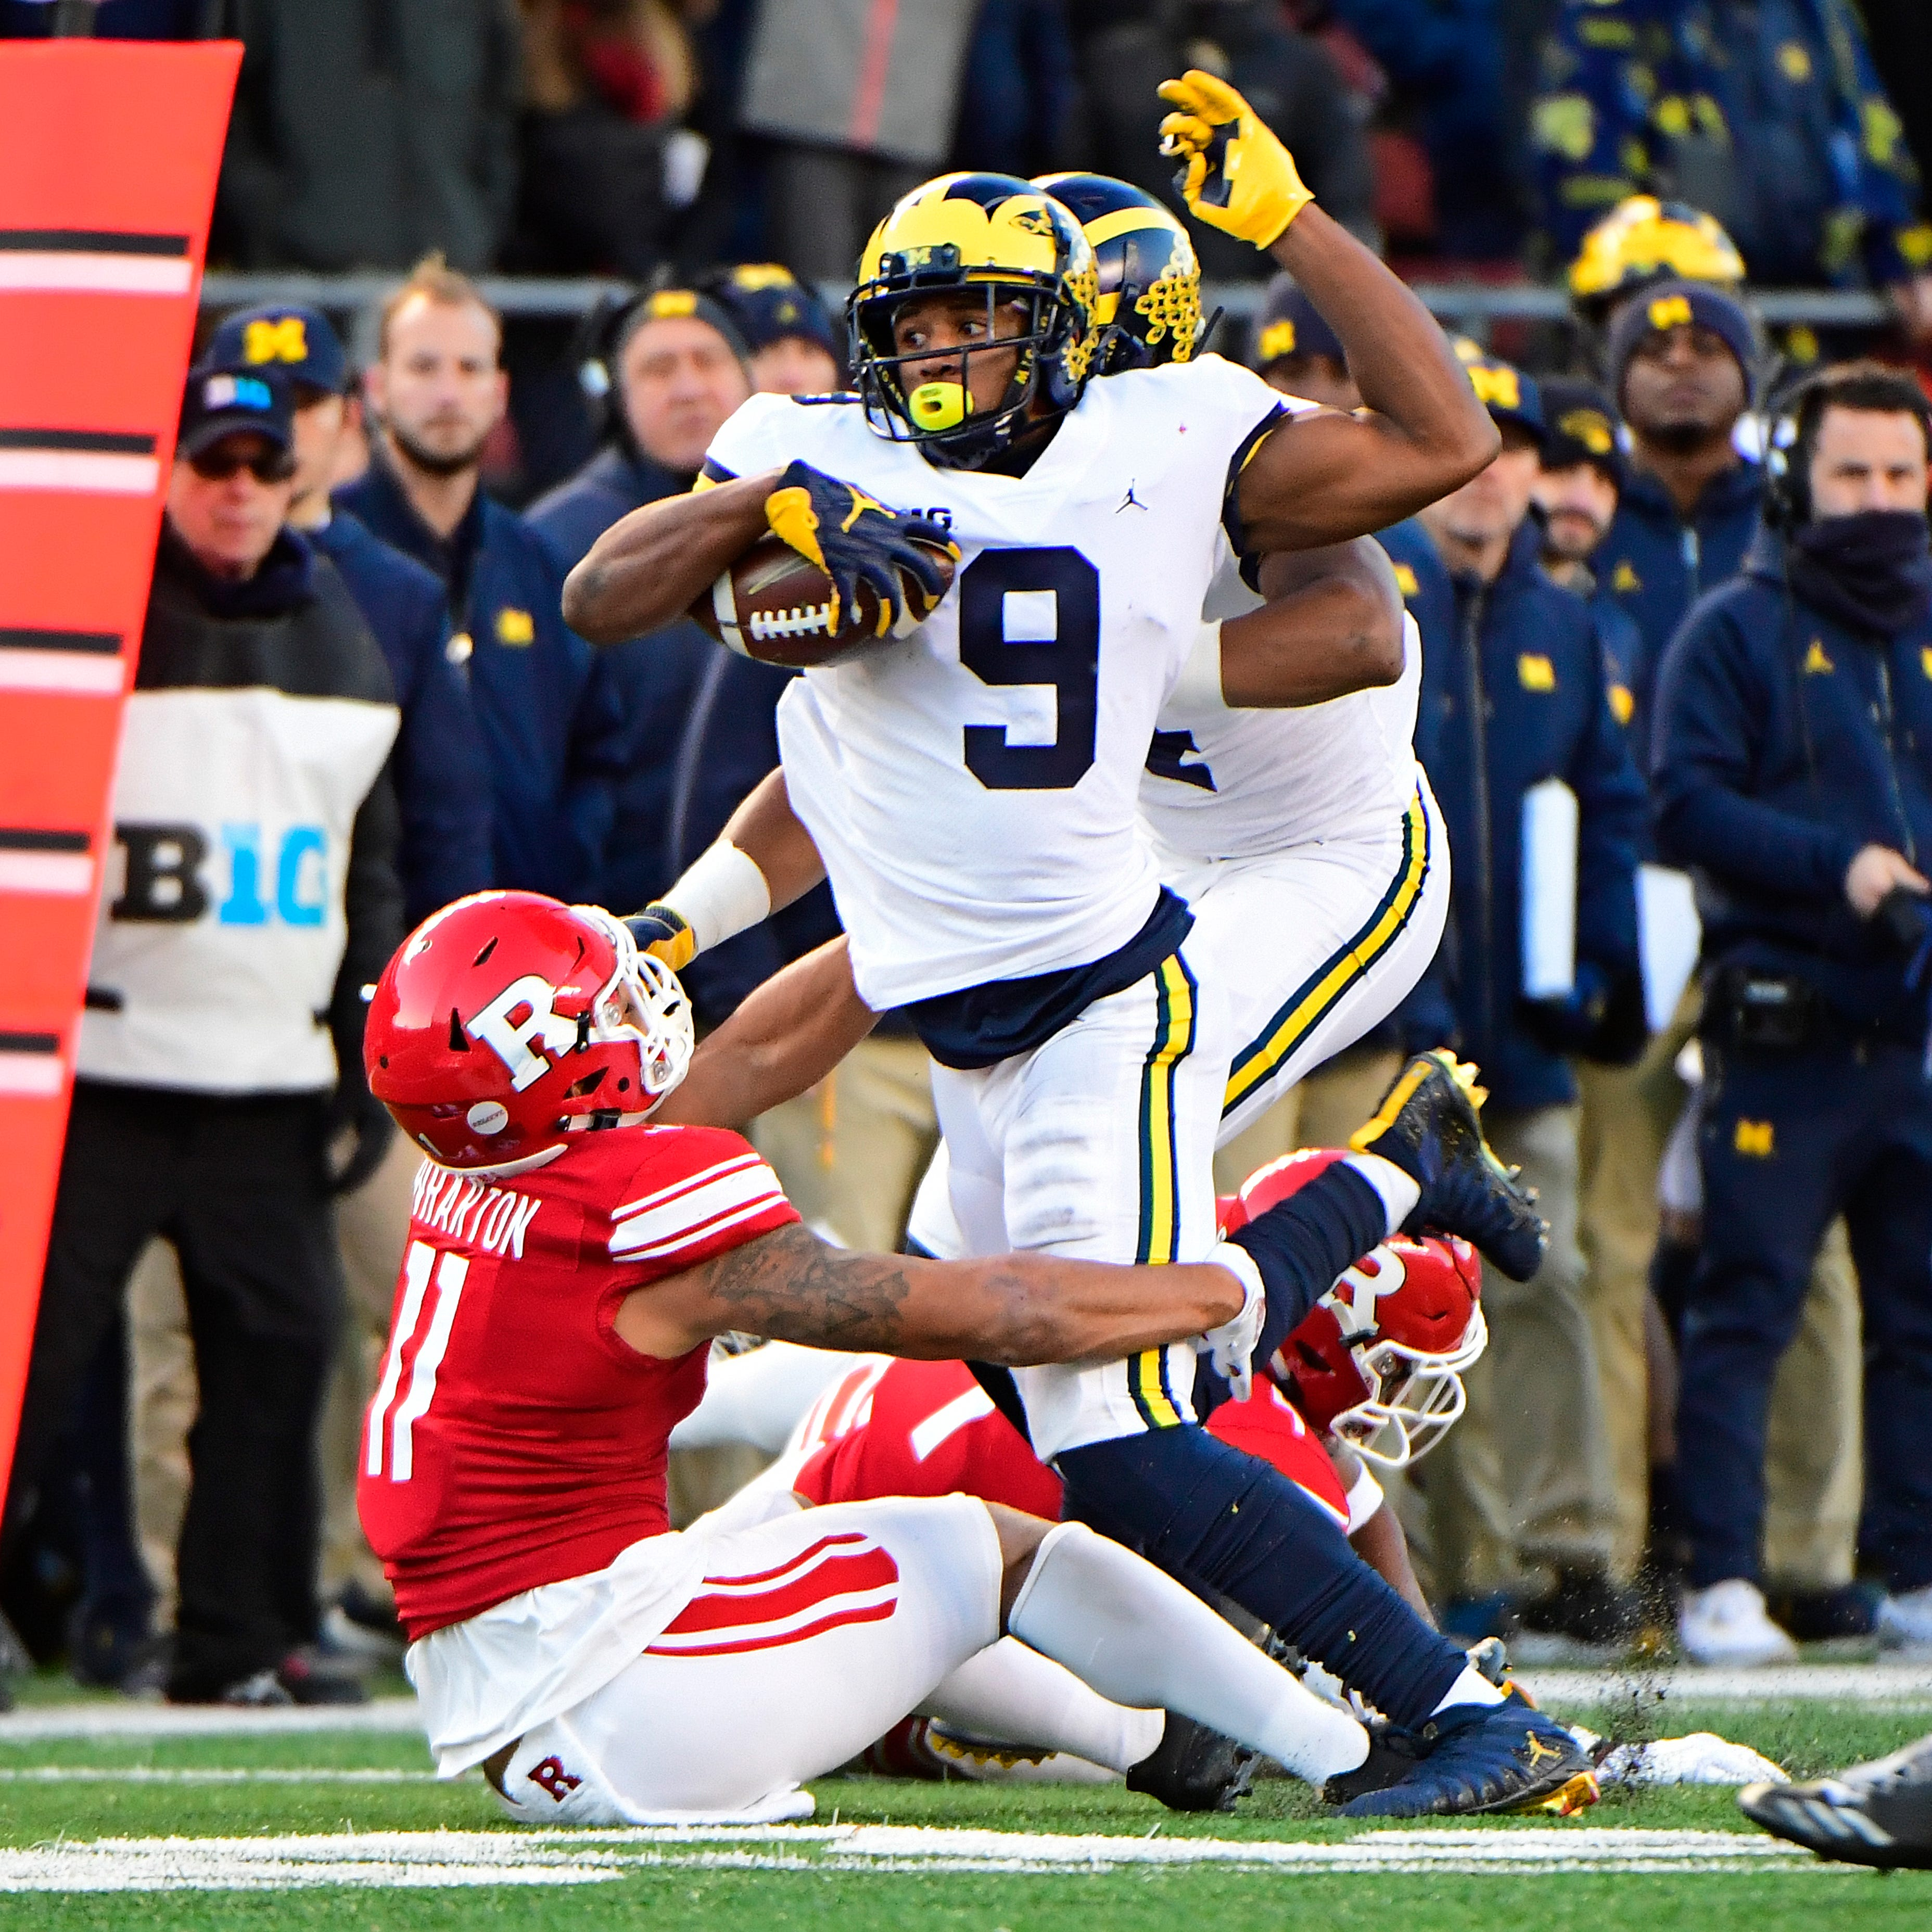 Michigan football's Donovan Peoples-Jones is quiet. His 2018 hasn't been